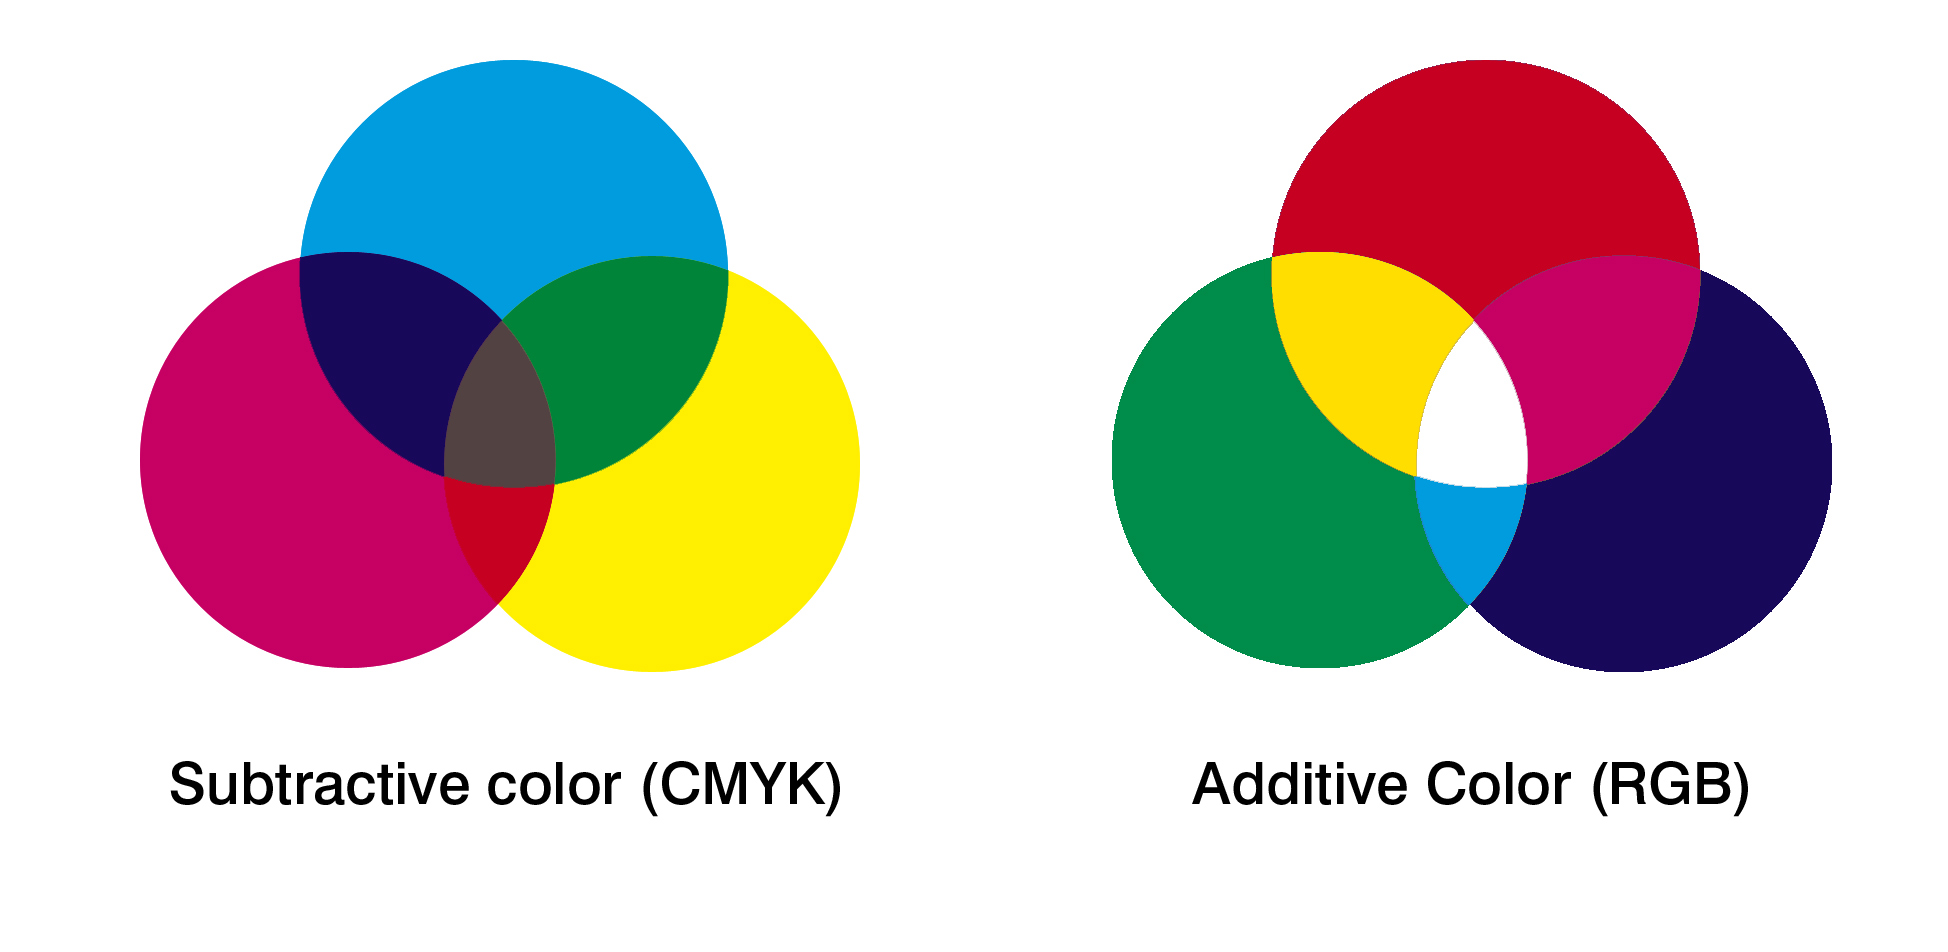 In Contrast CMYK Colors Are Subtractive This Means That A Color